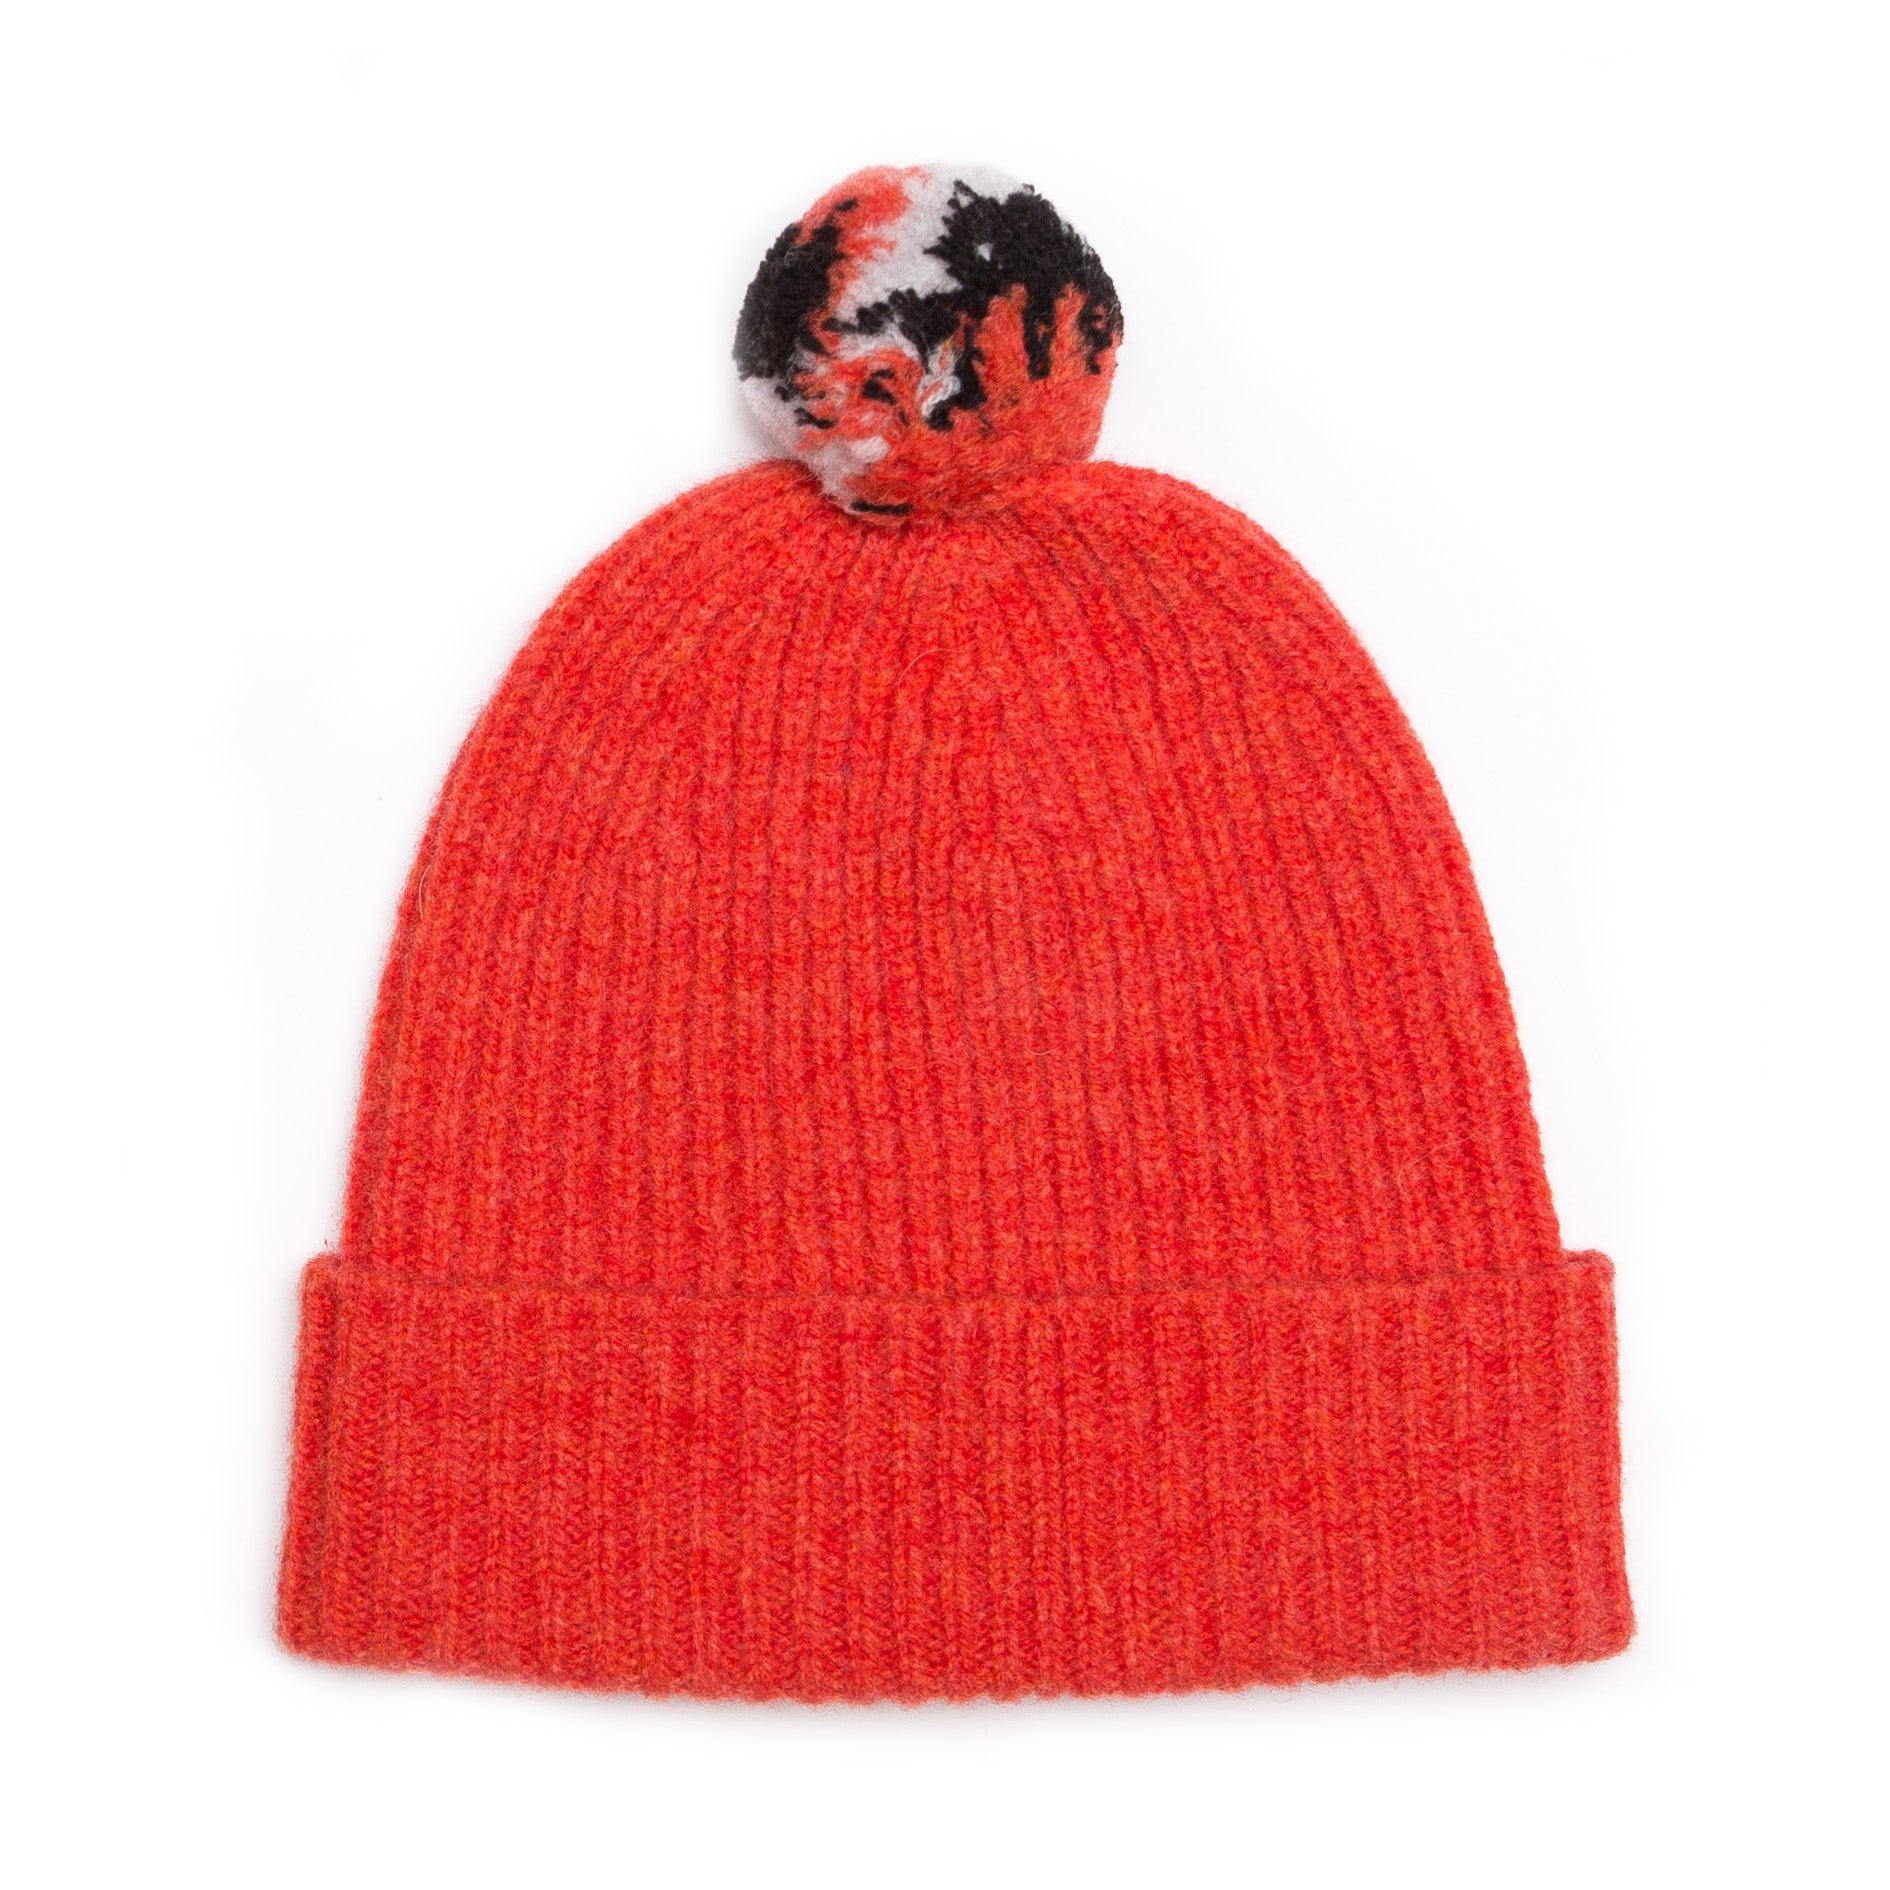 ORANGE BOBBLE HAT - GREEN THOMAS